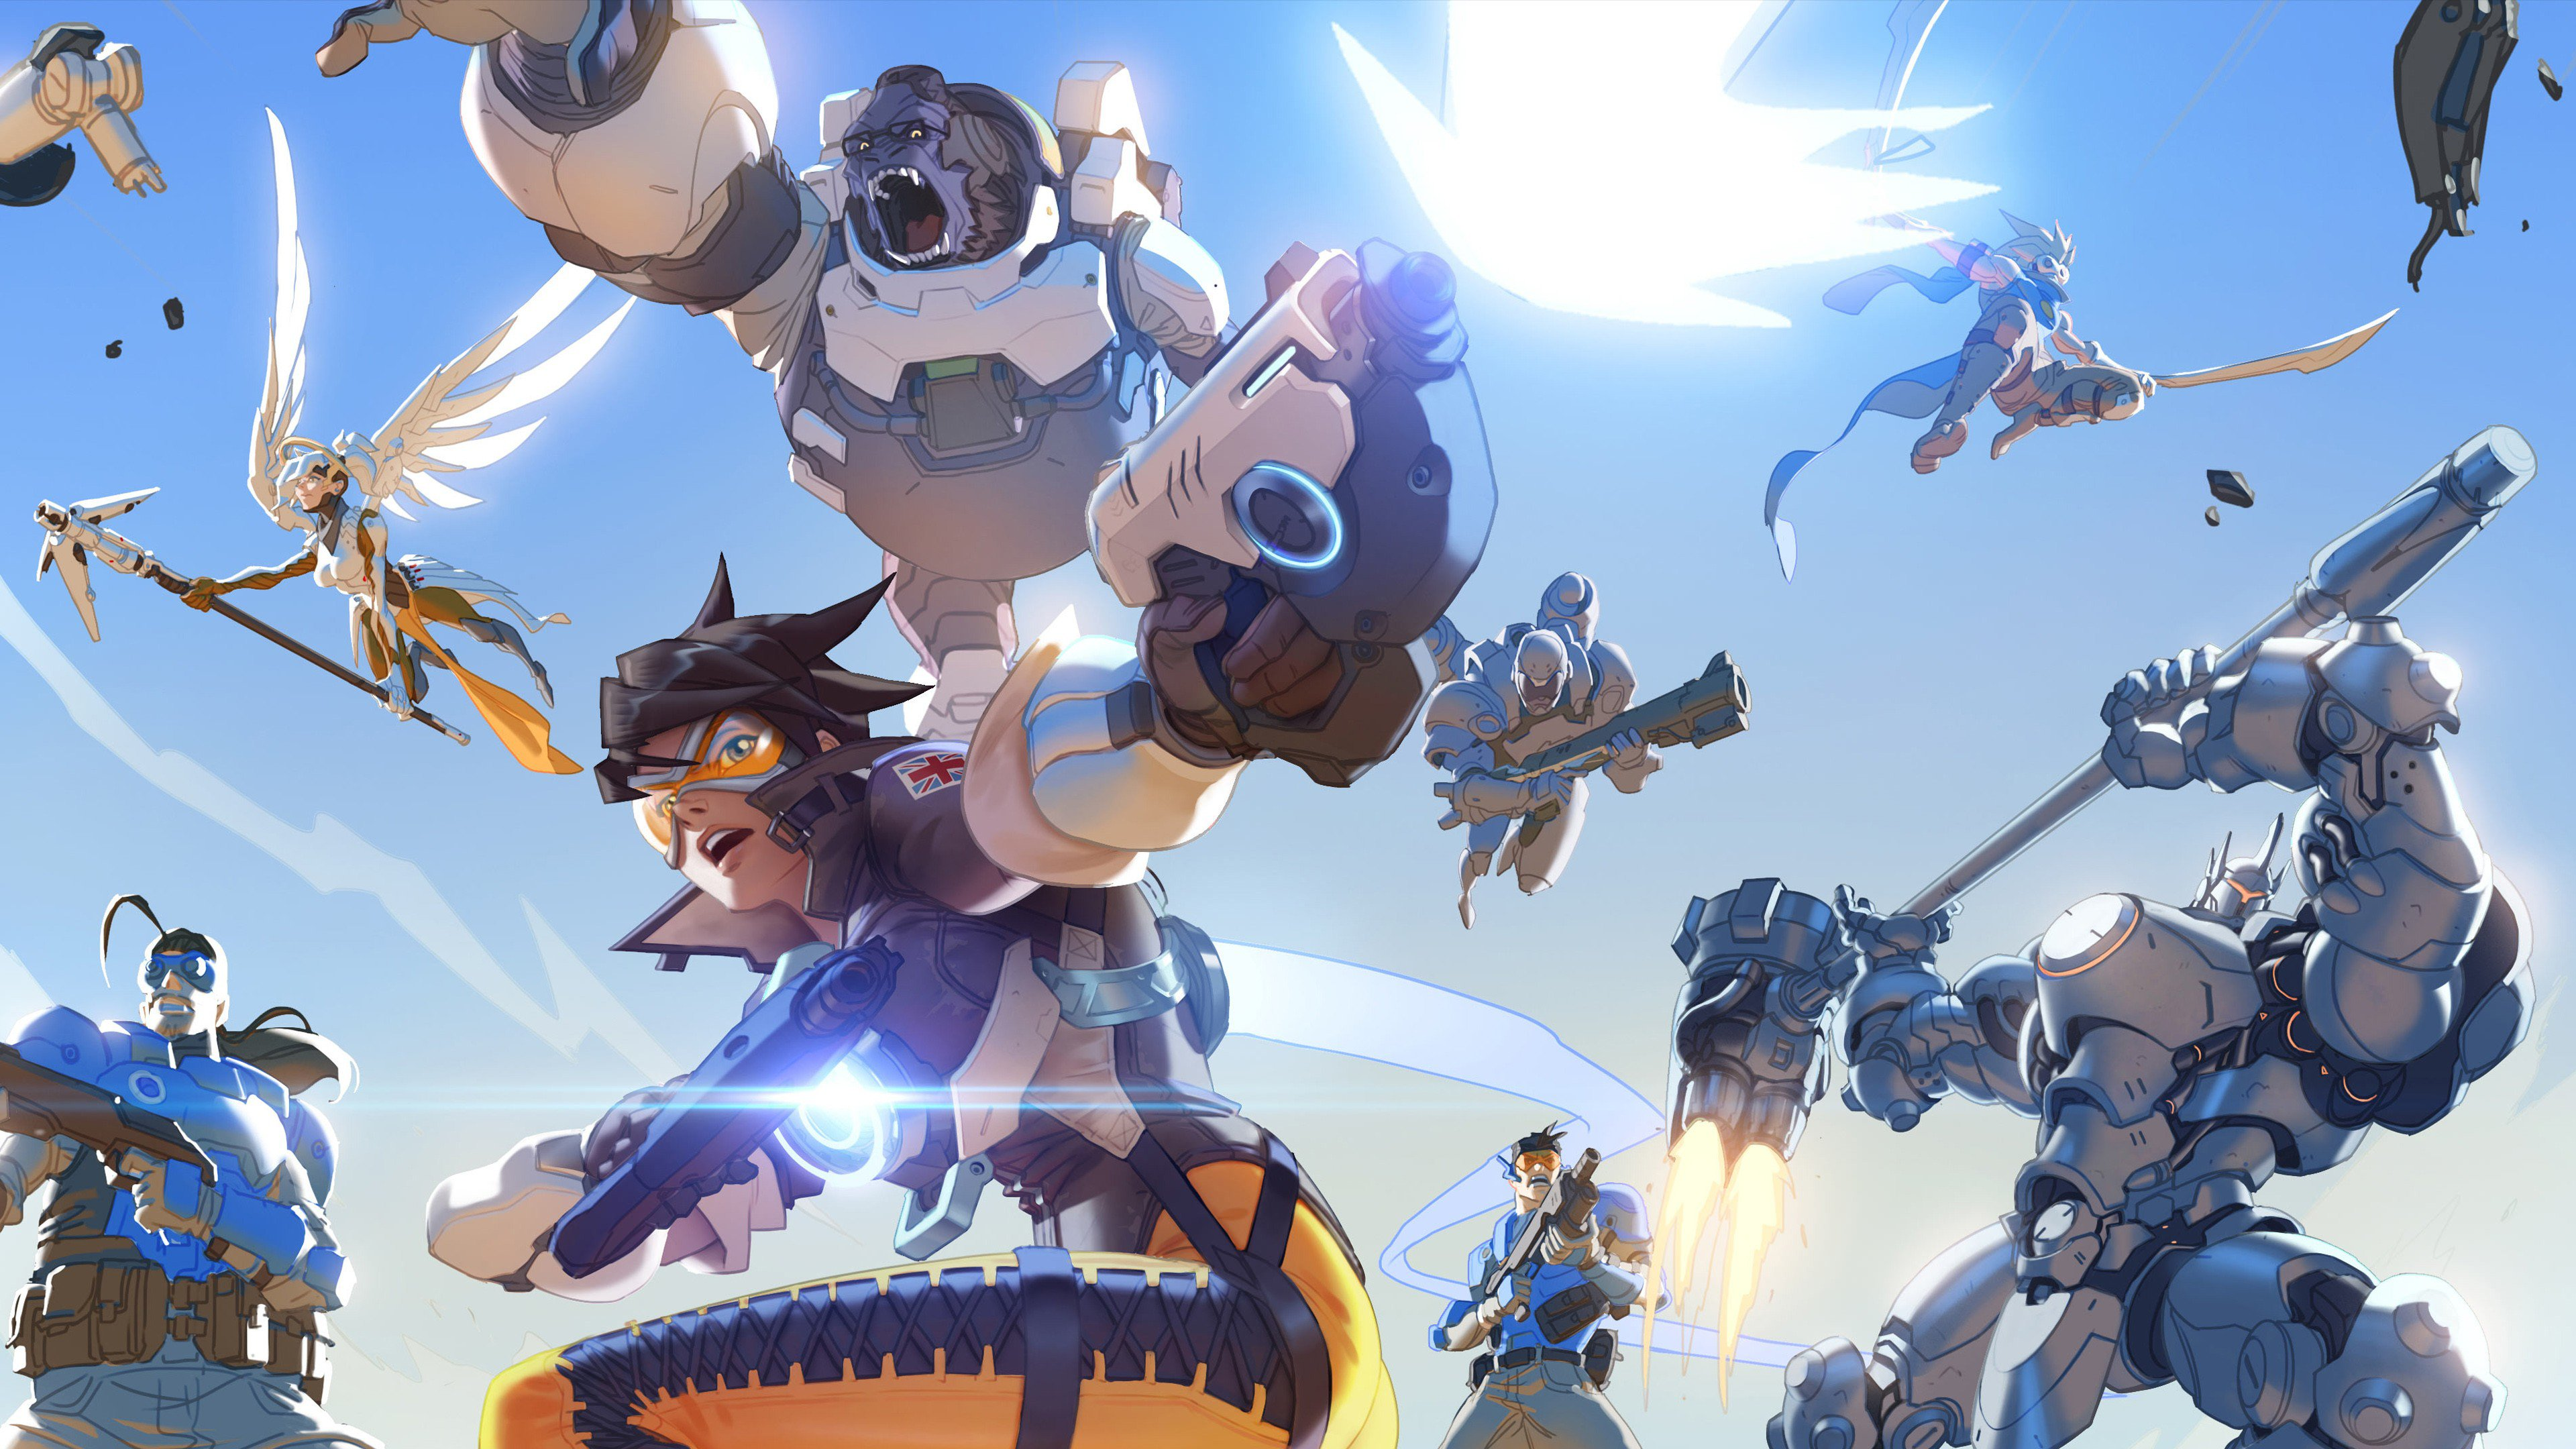 Overwatch 4k Wallpaper Games HD Wallpapers 3840x2160